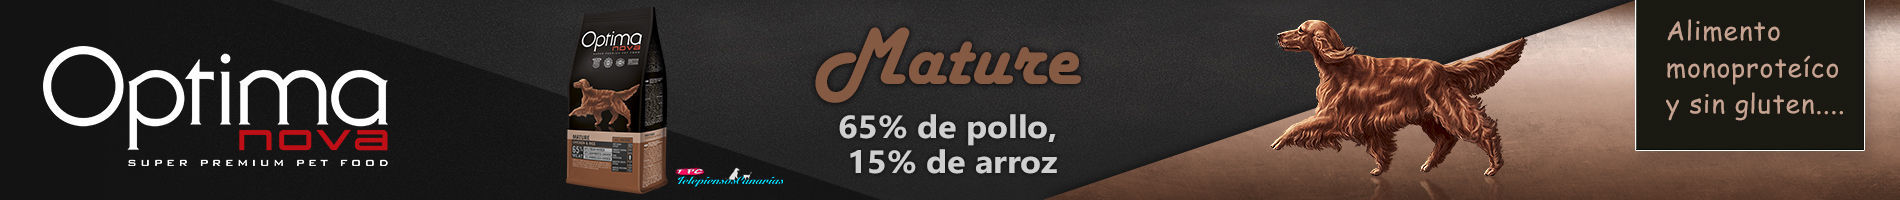 Optima nova mature, con 65% pollo, 15% arroz y sin gluten